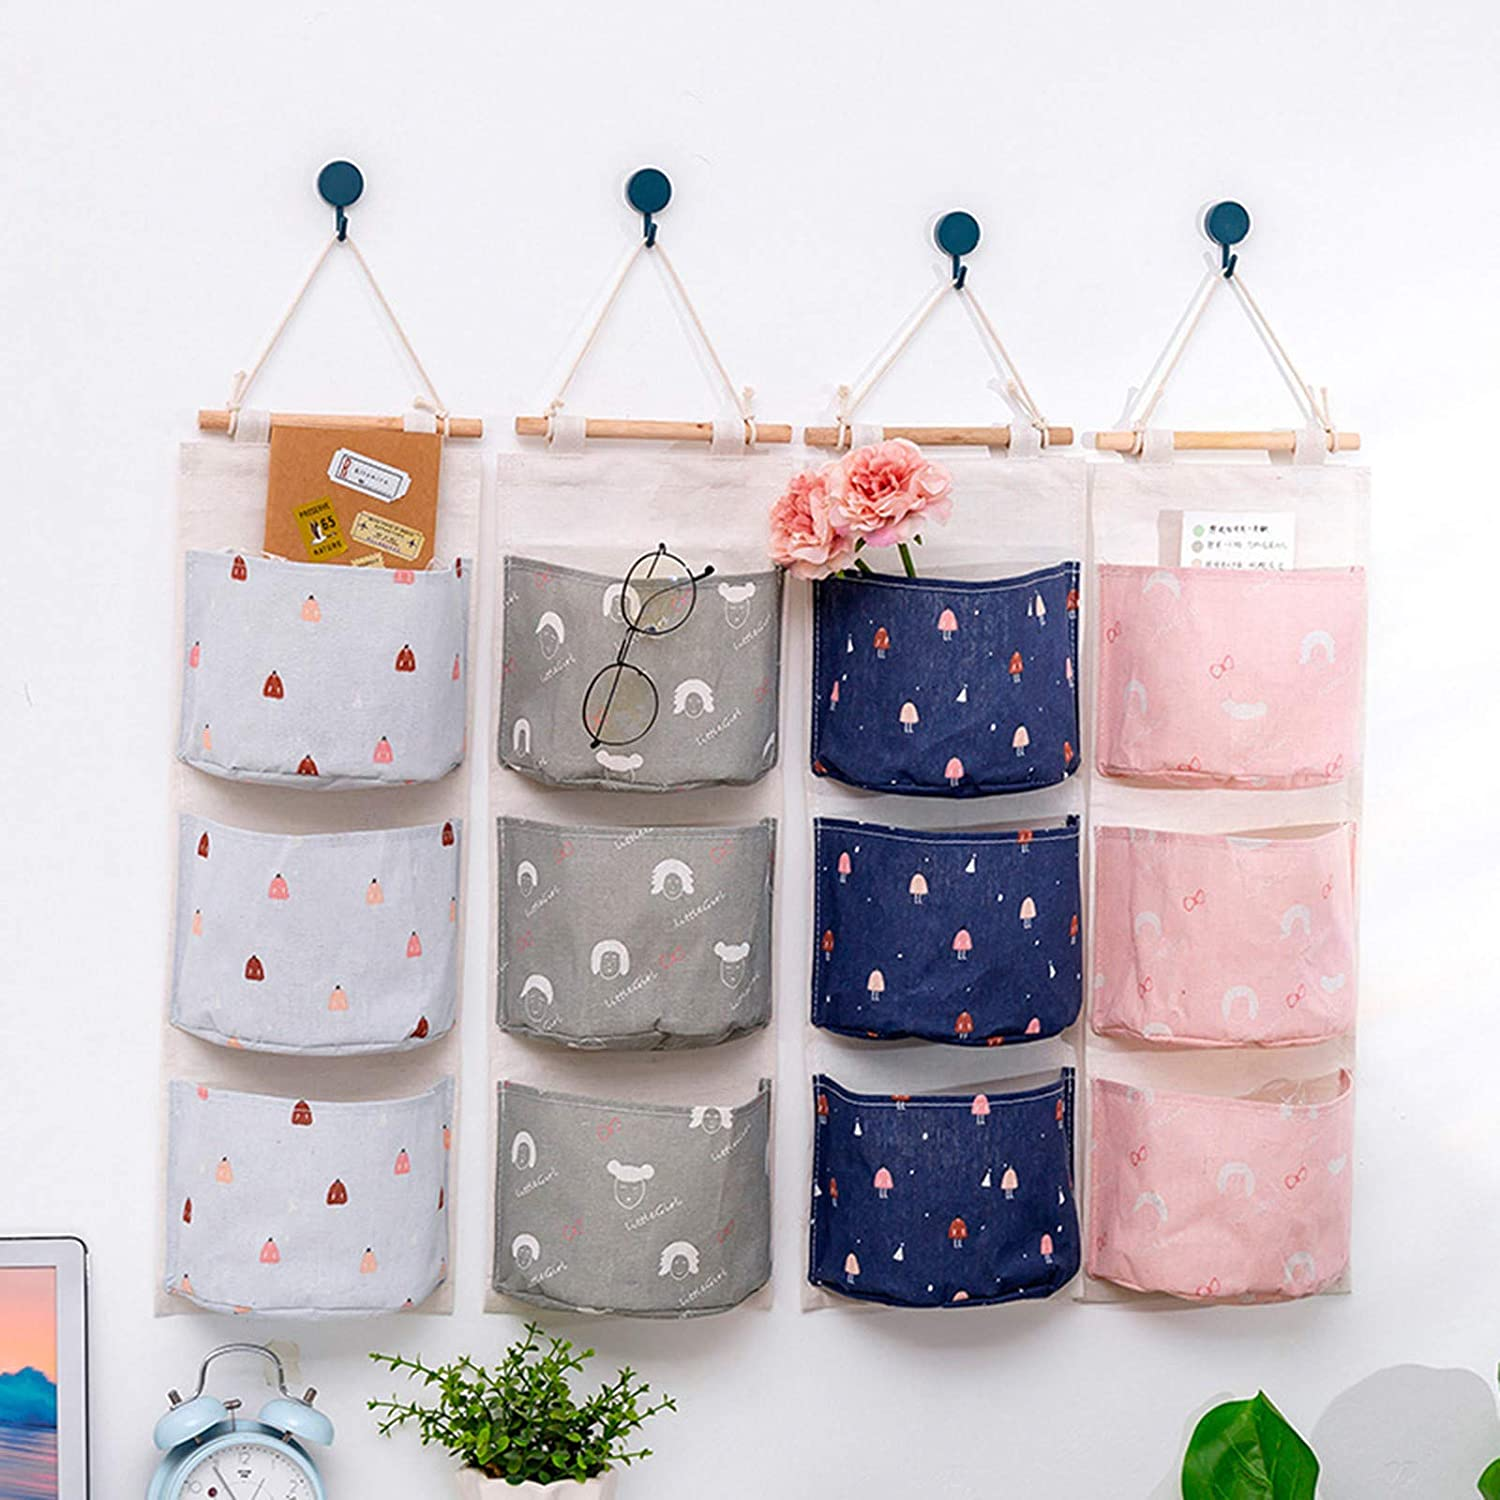 Linen Farbric Hanging Pocket Organizer with 3 Remote-Sized Width Pockets for Bedroom Bathroom VESNIBA Wall Hanging Storage Bag Waterproof Over The Door Closet Organizer